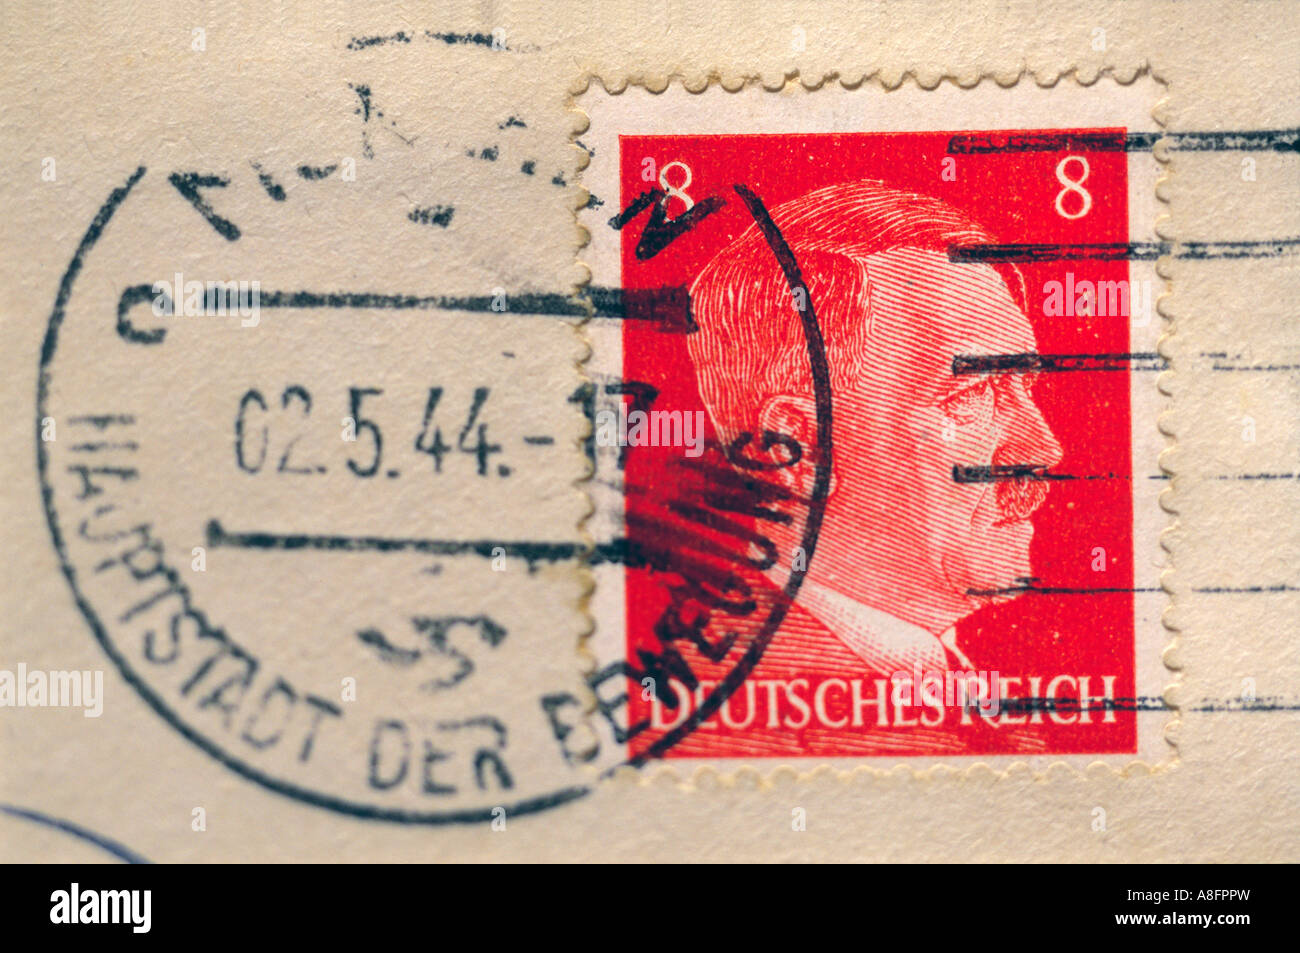 Stamp of the leader of the third empire of Germany Adolf Hitler - Stock Image